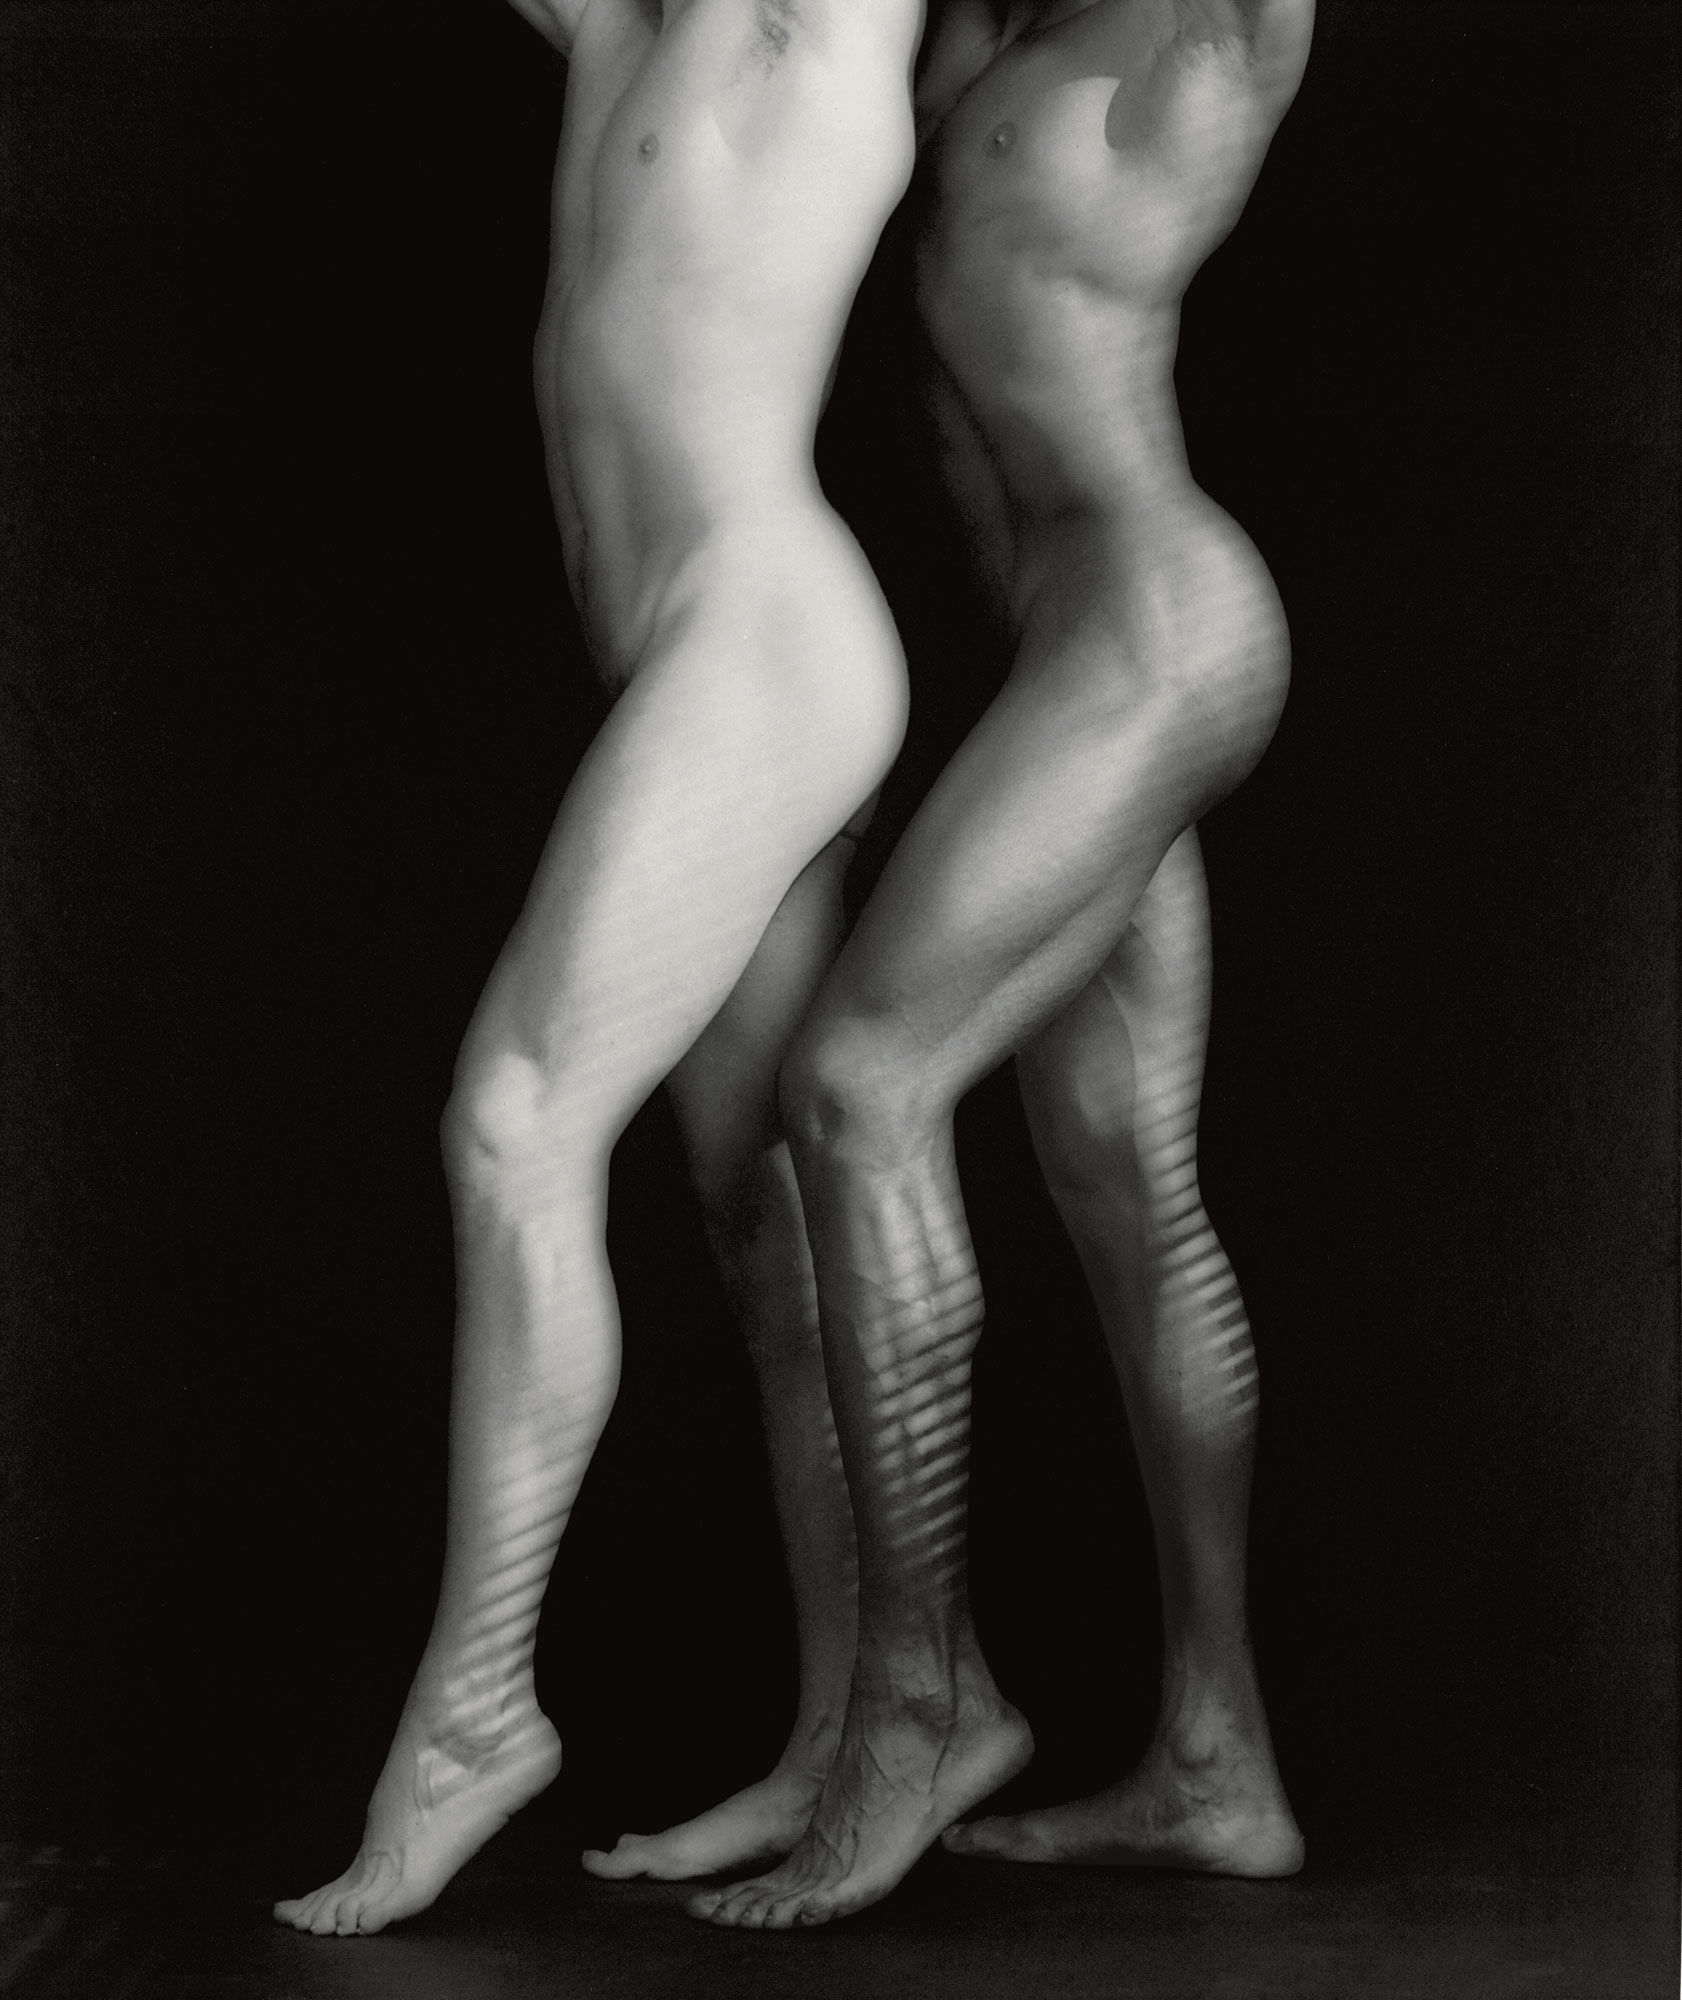 foto: © Robert Mapplethorpe Foundation - Ken Tyler